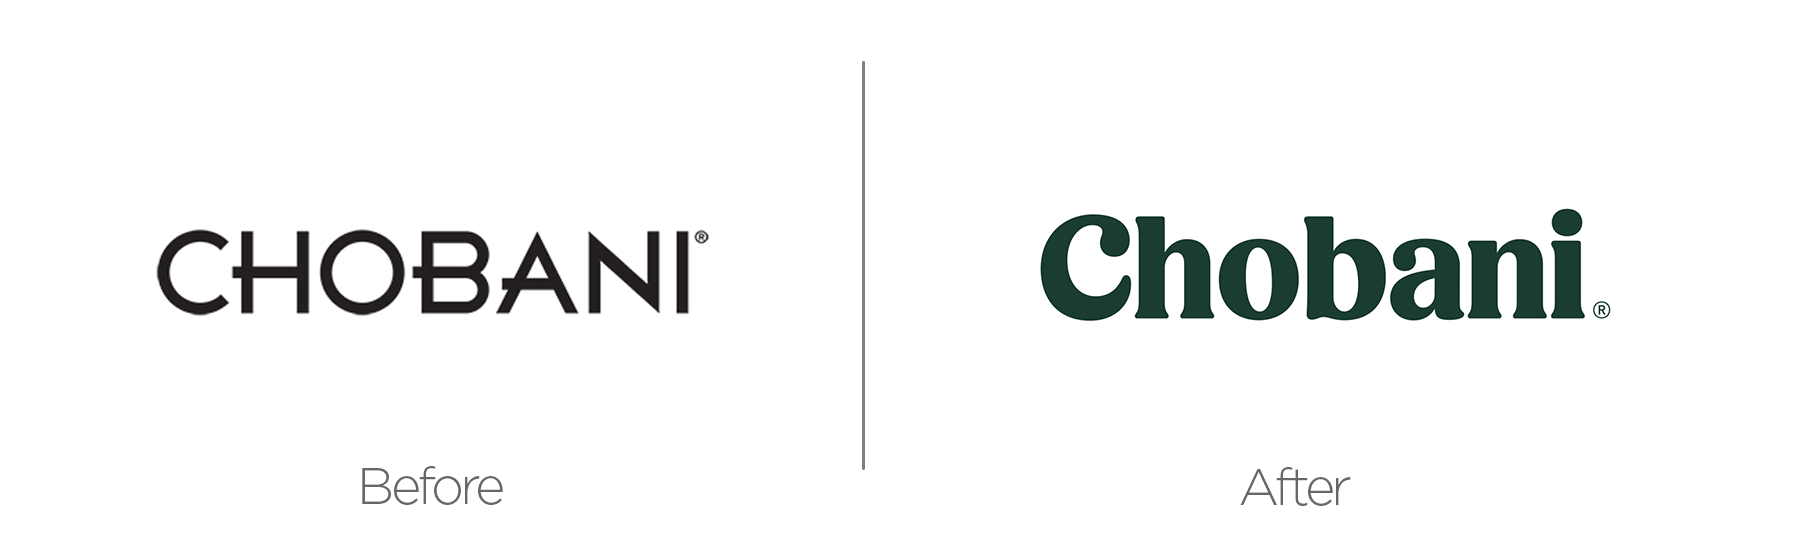 Chobani rebrand before and after